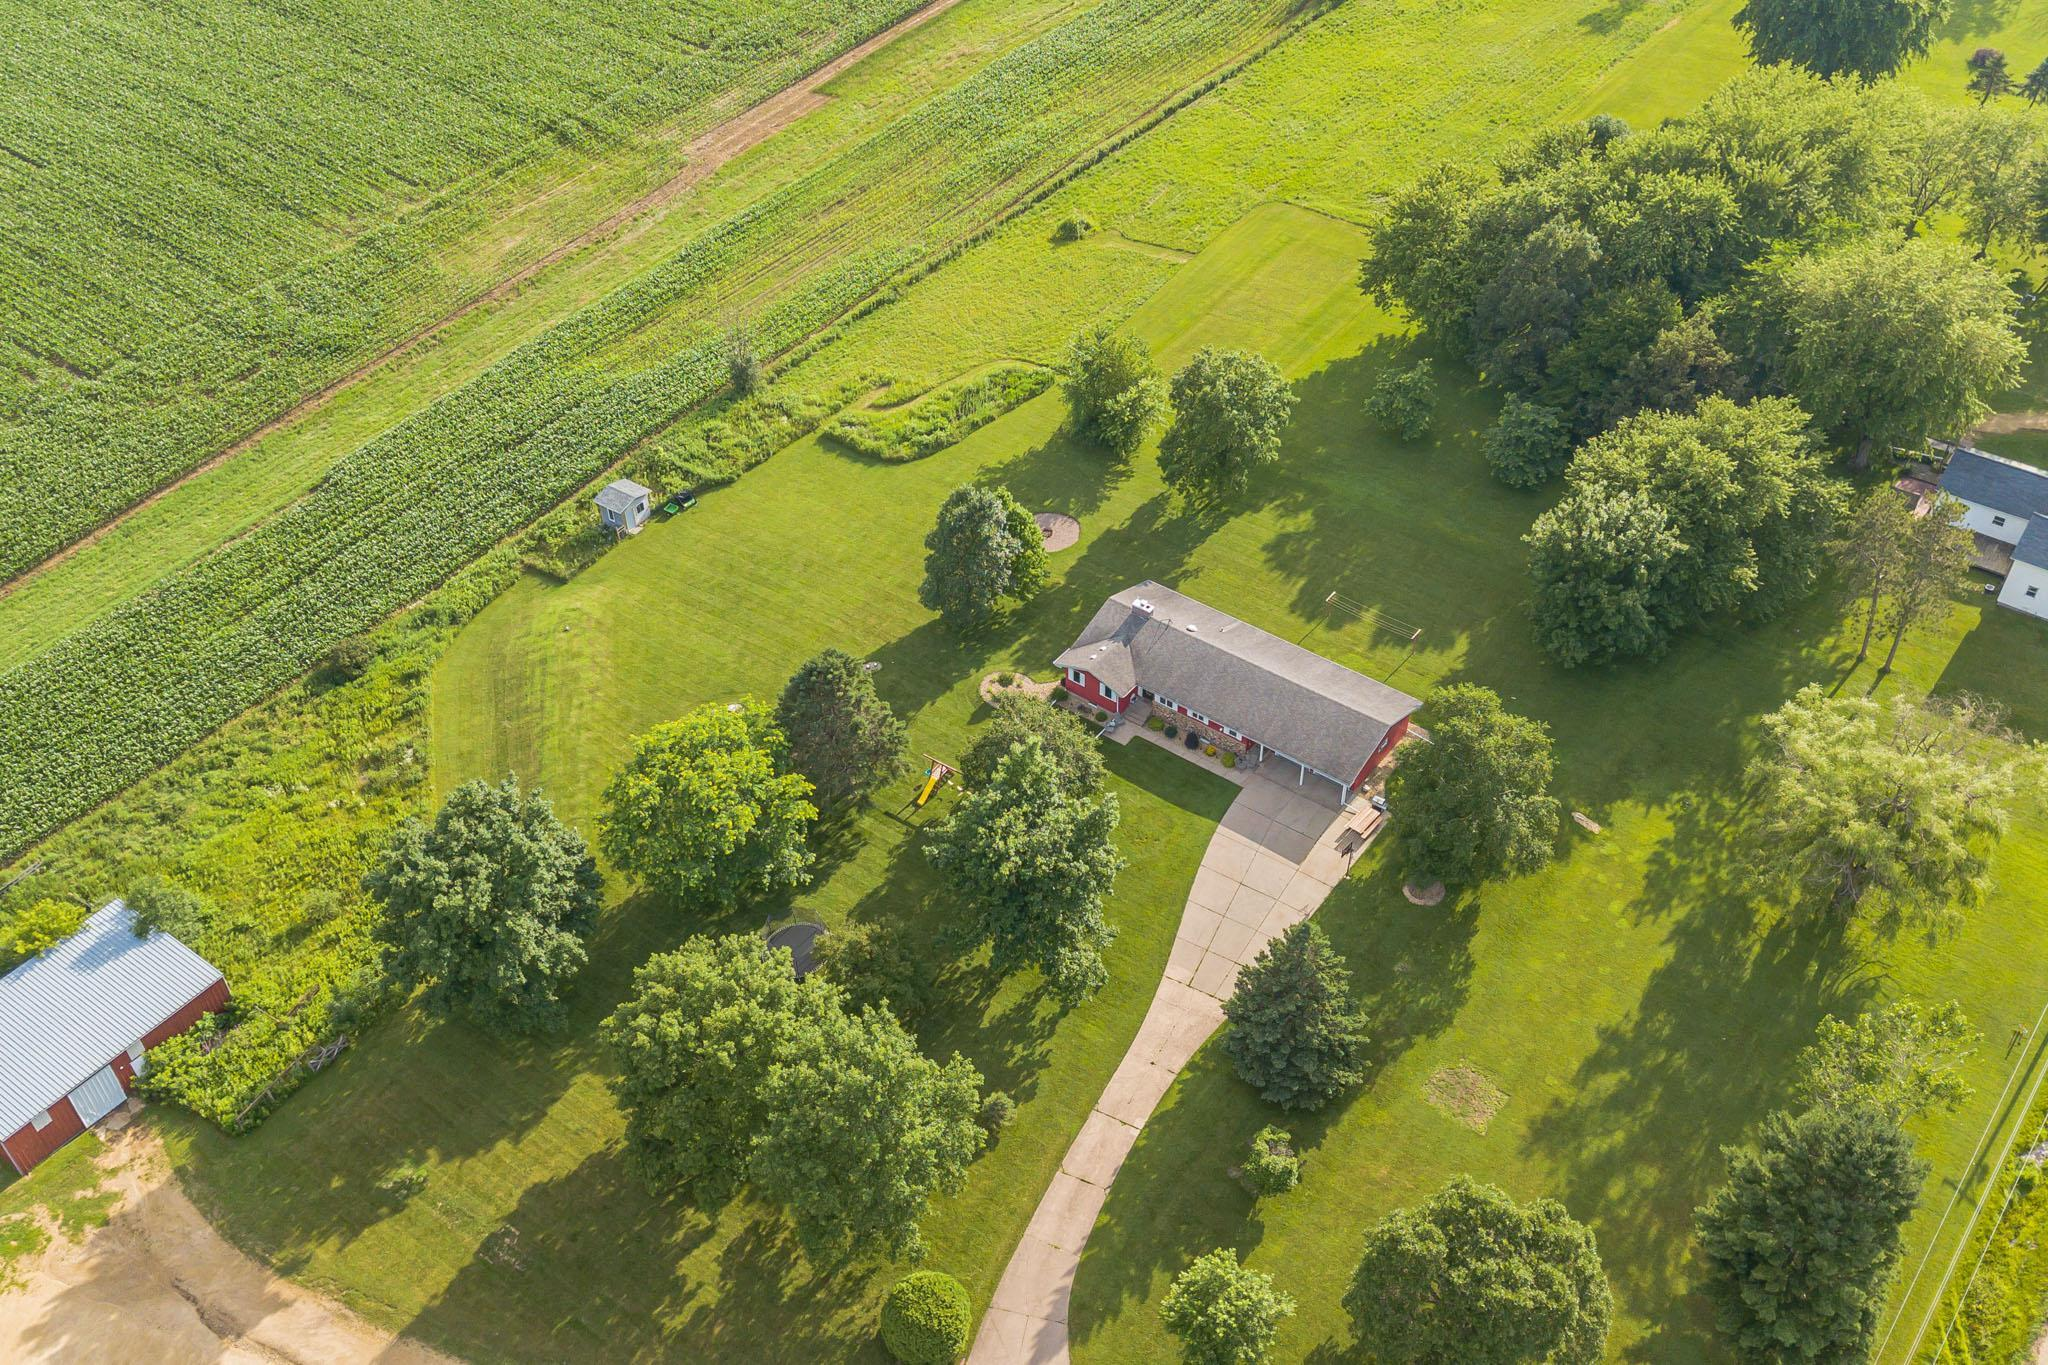 2543 80th Property Photo - Woodville, WI real estate listing